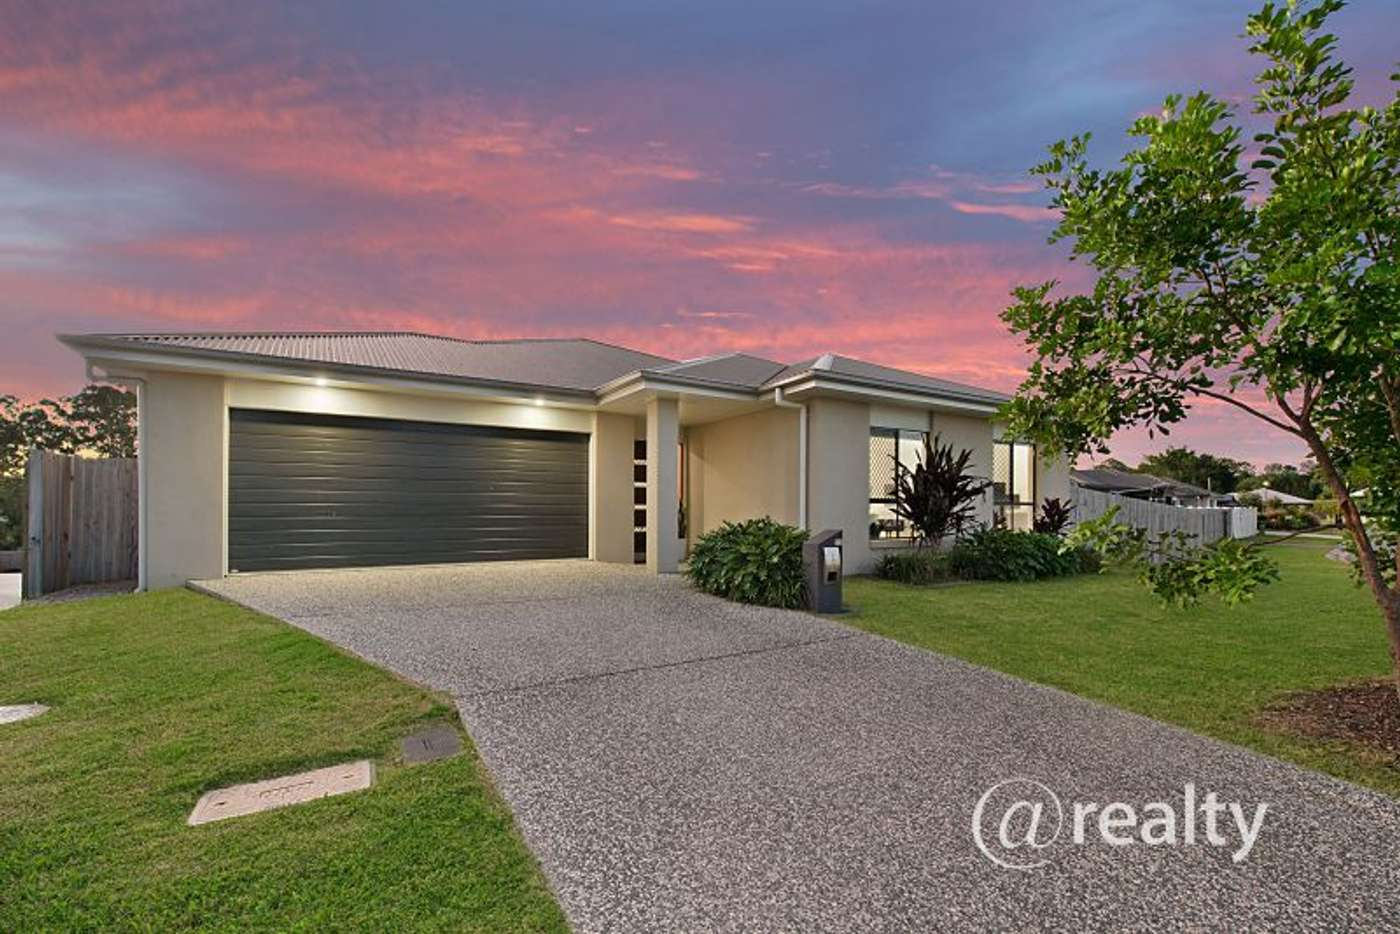 Main view of Homely house listing, 111 Riverside Circuit, Joyner QLD 4500